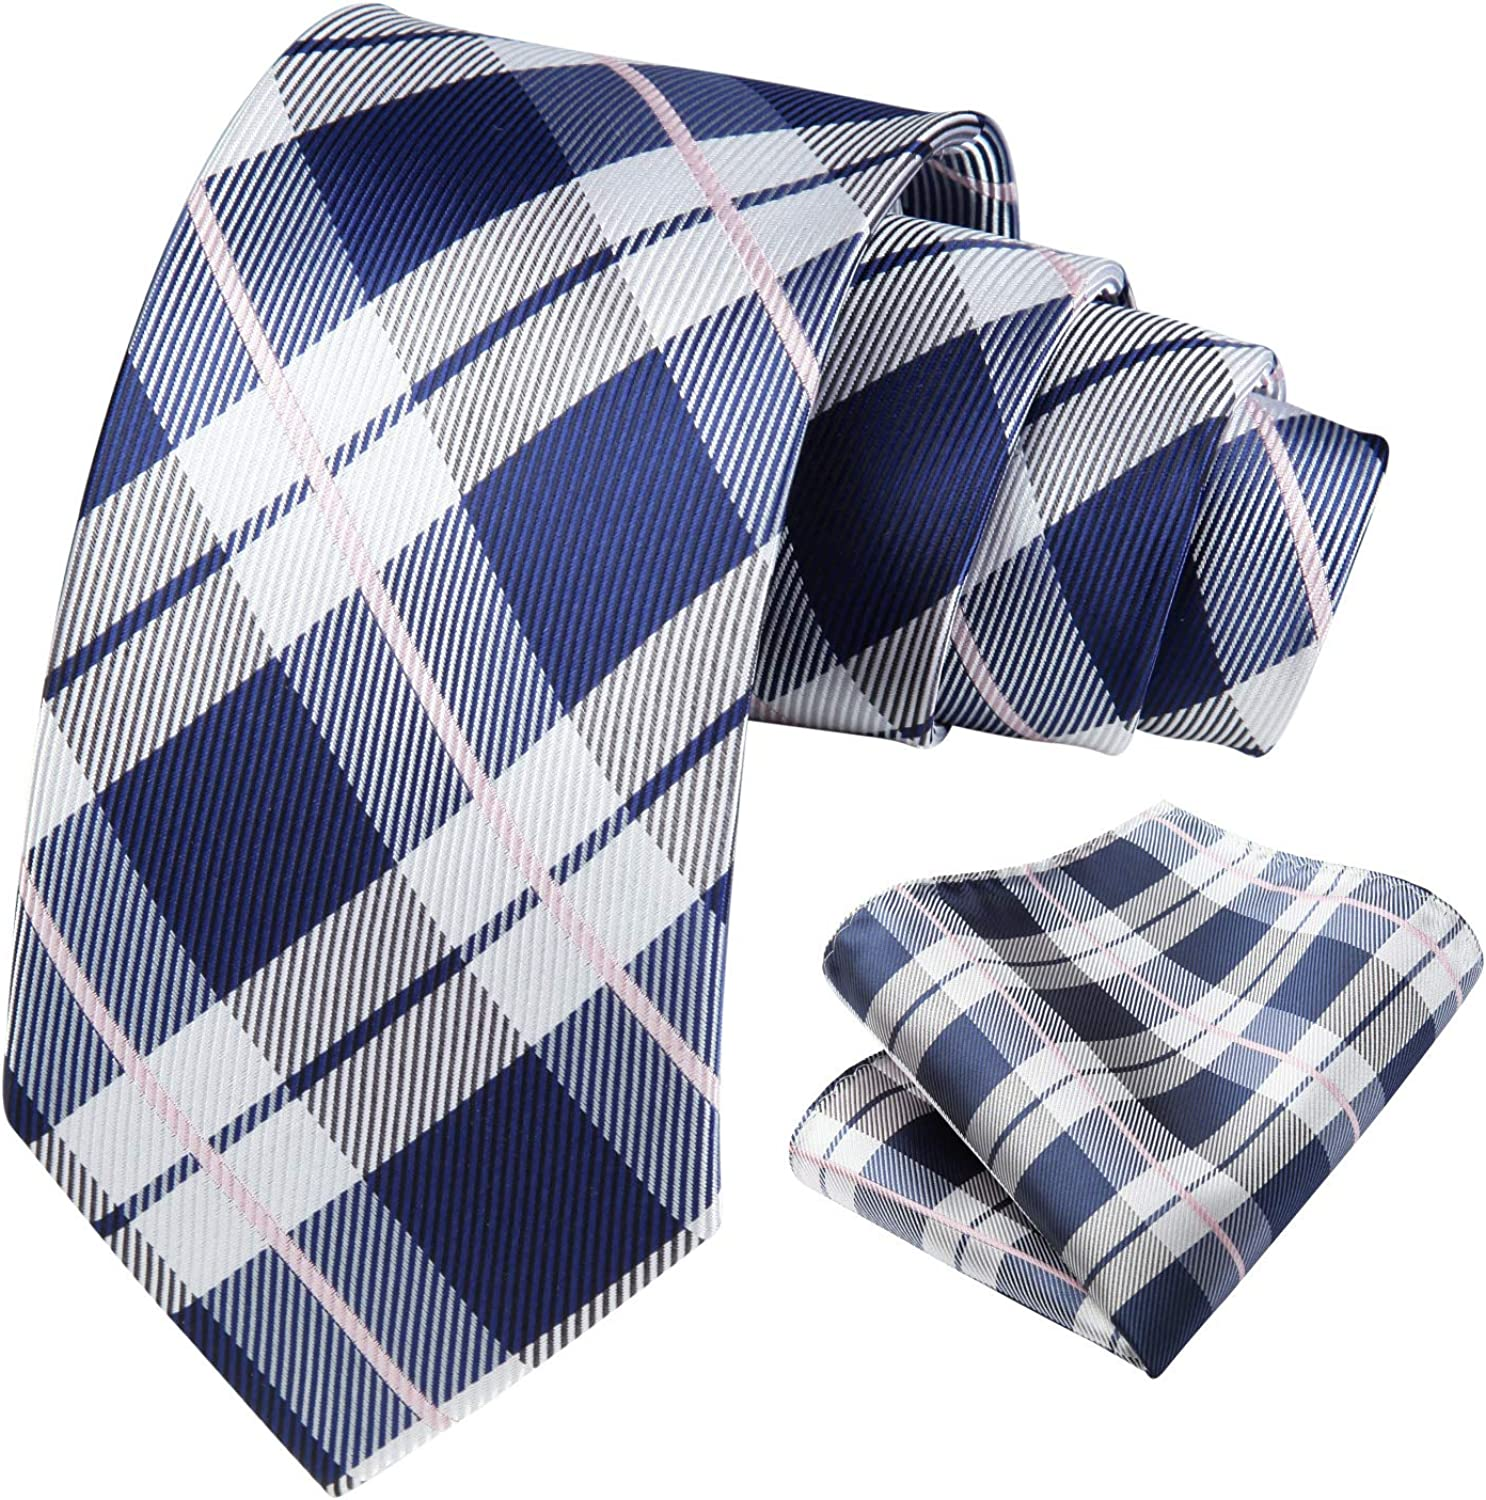 Hisdern Plaid Checkered Ties for Men Pocket Square Set Classic Silk Woven Mens Neckties Handkerchief for Wedding Party